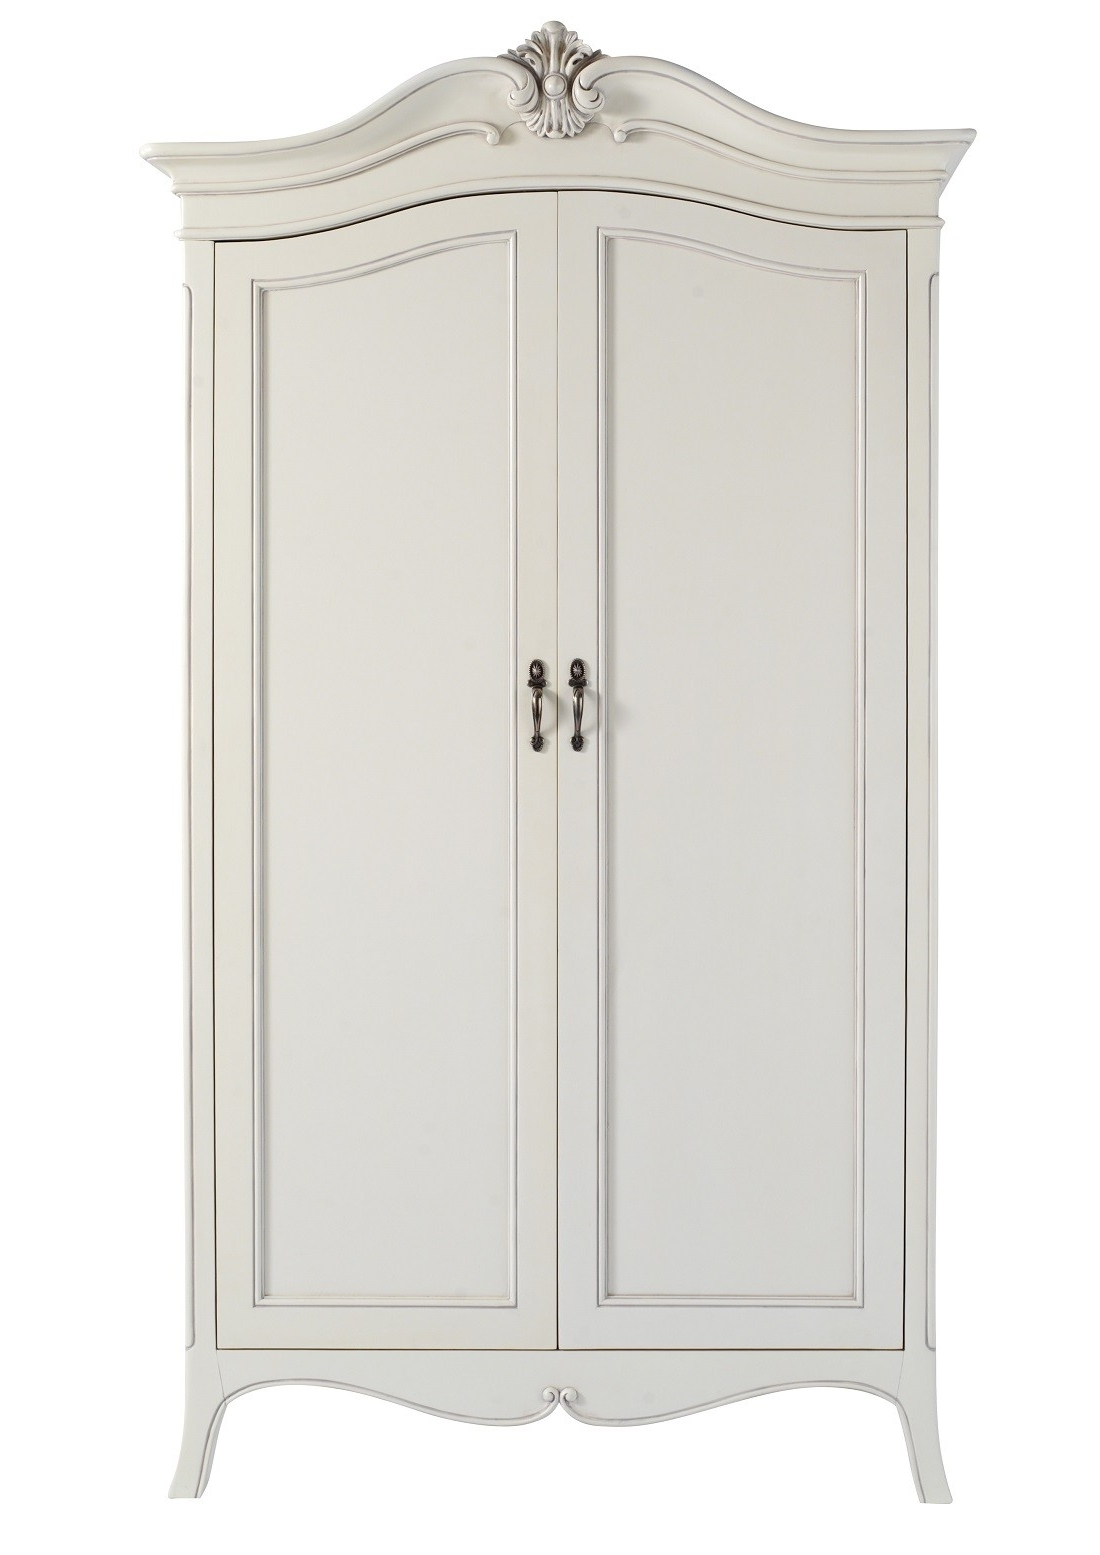 White French Style Wardrobes Pertaining To Favorite Louis French Ivory Painted 2 Door Double Wardrobe (View 11 of 15)